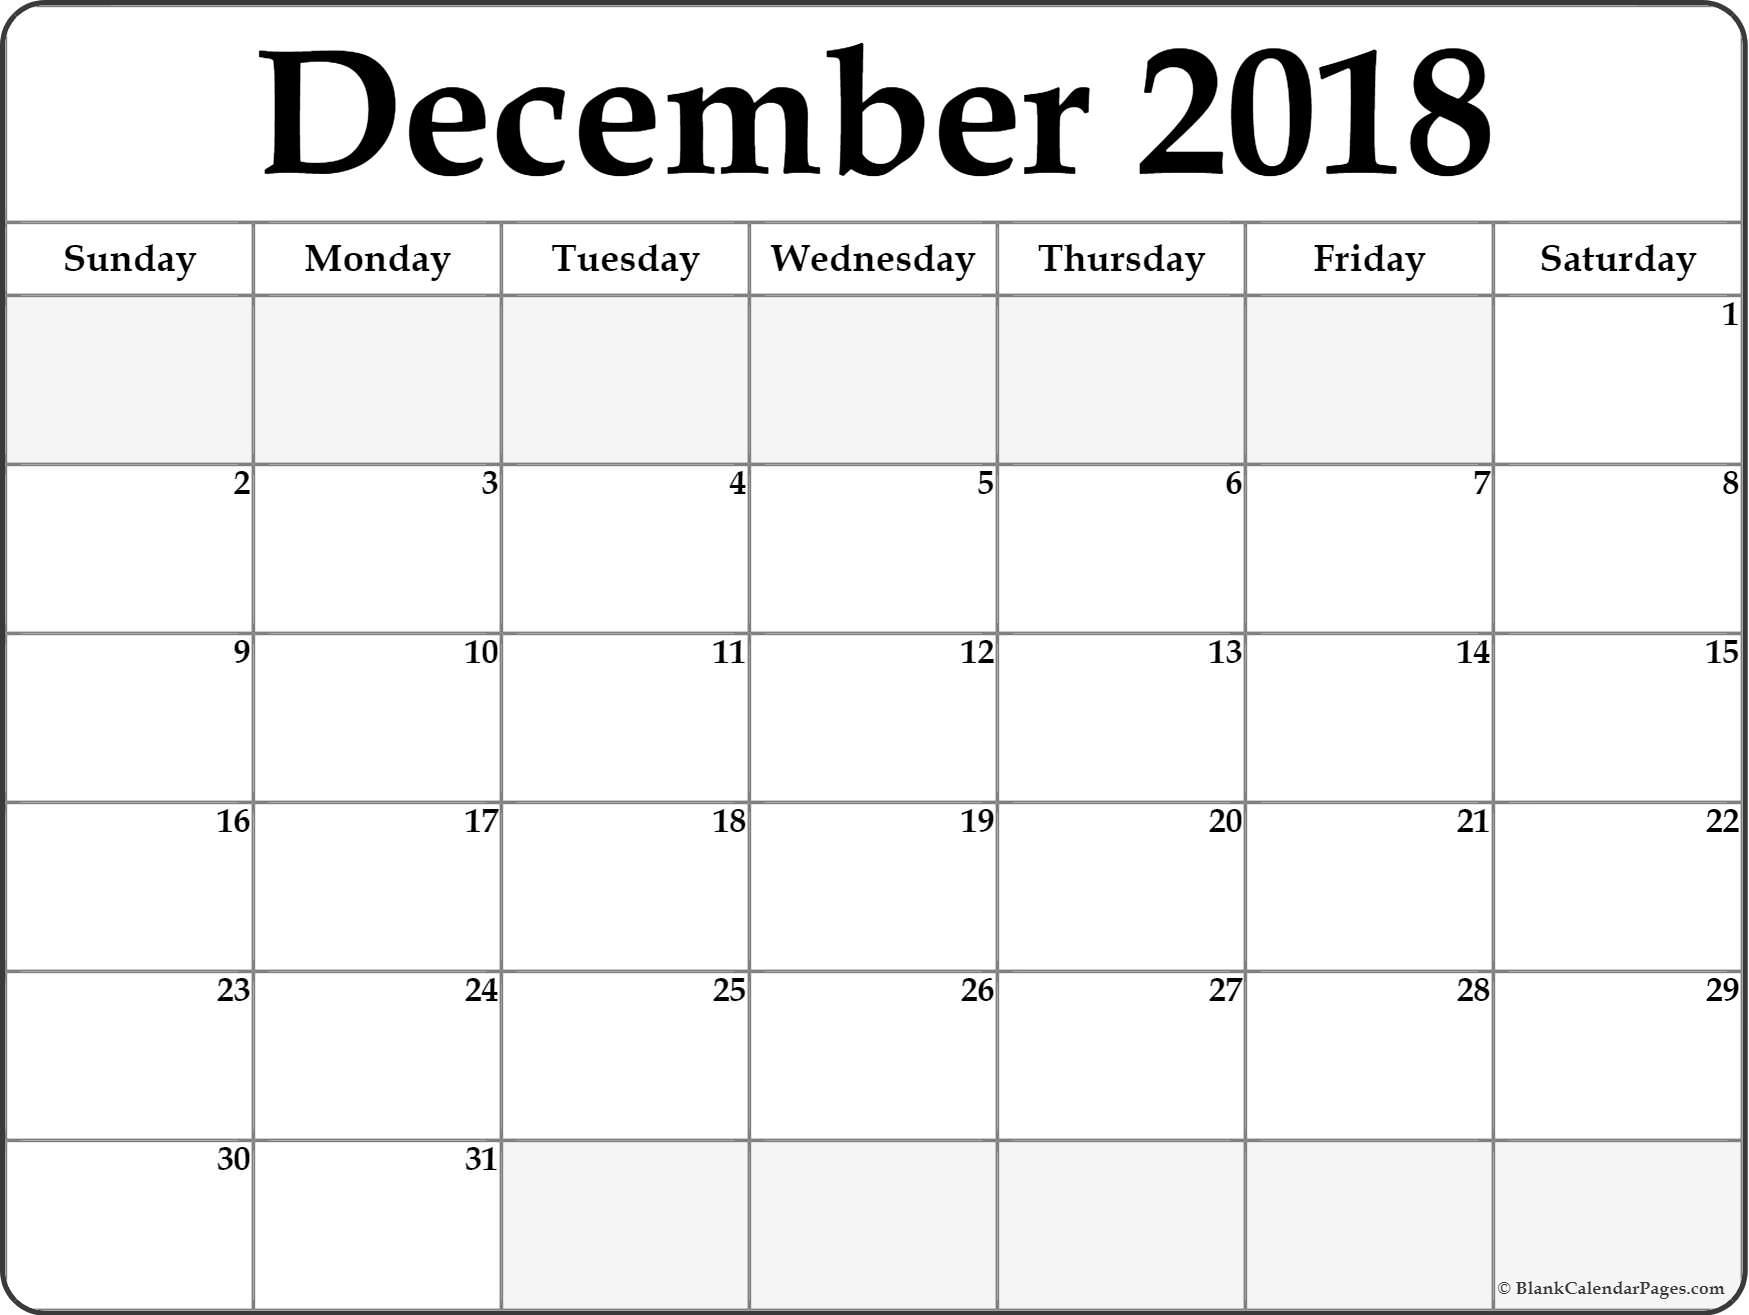 December 2018 Blank Calendar . December 2018 Calendar Printable pertaining to Blank Calendar Page December